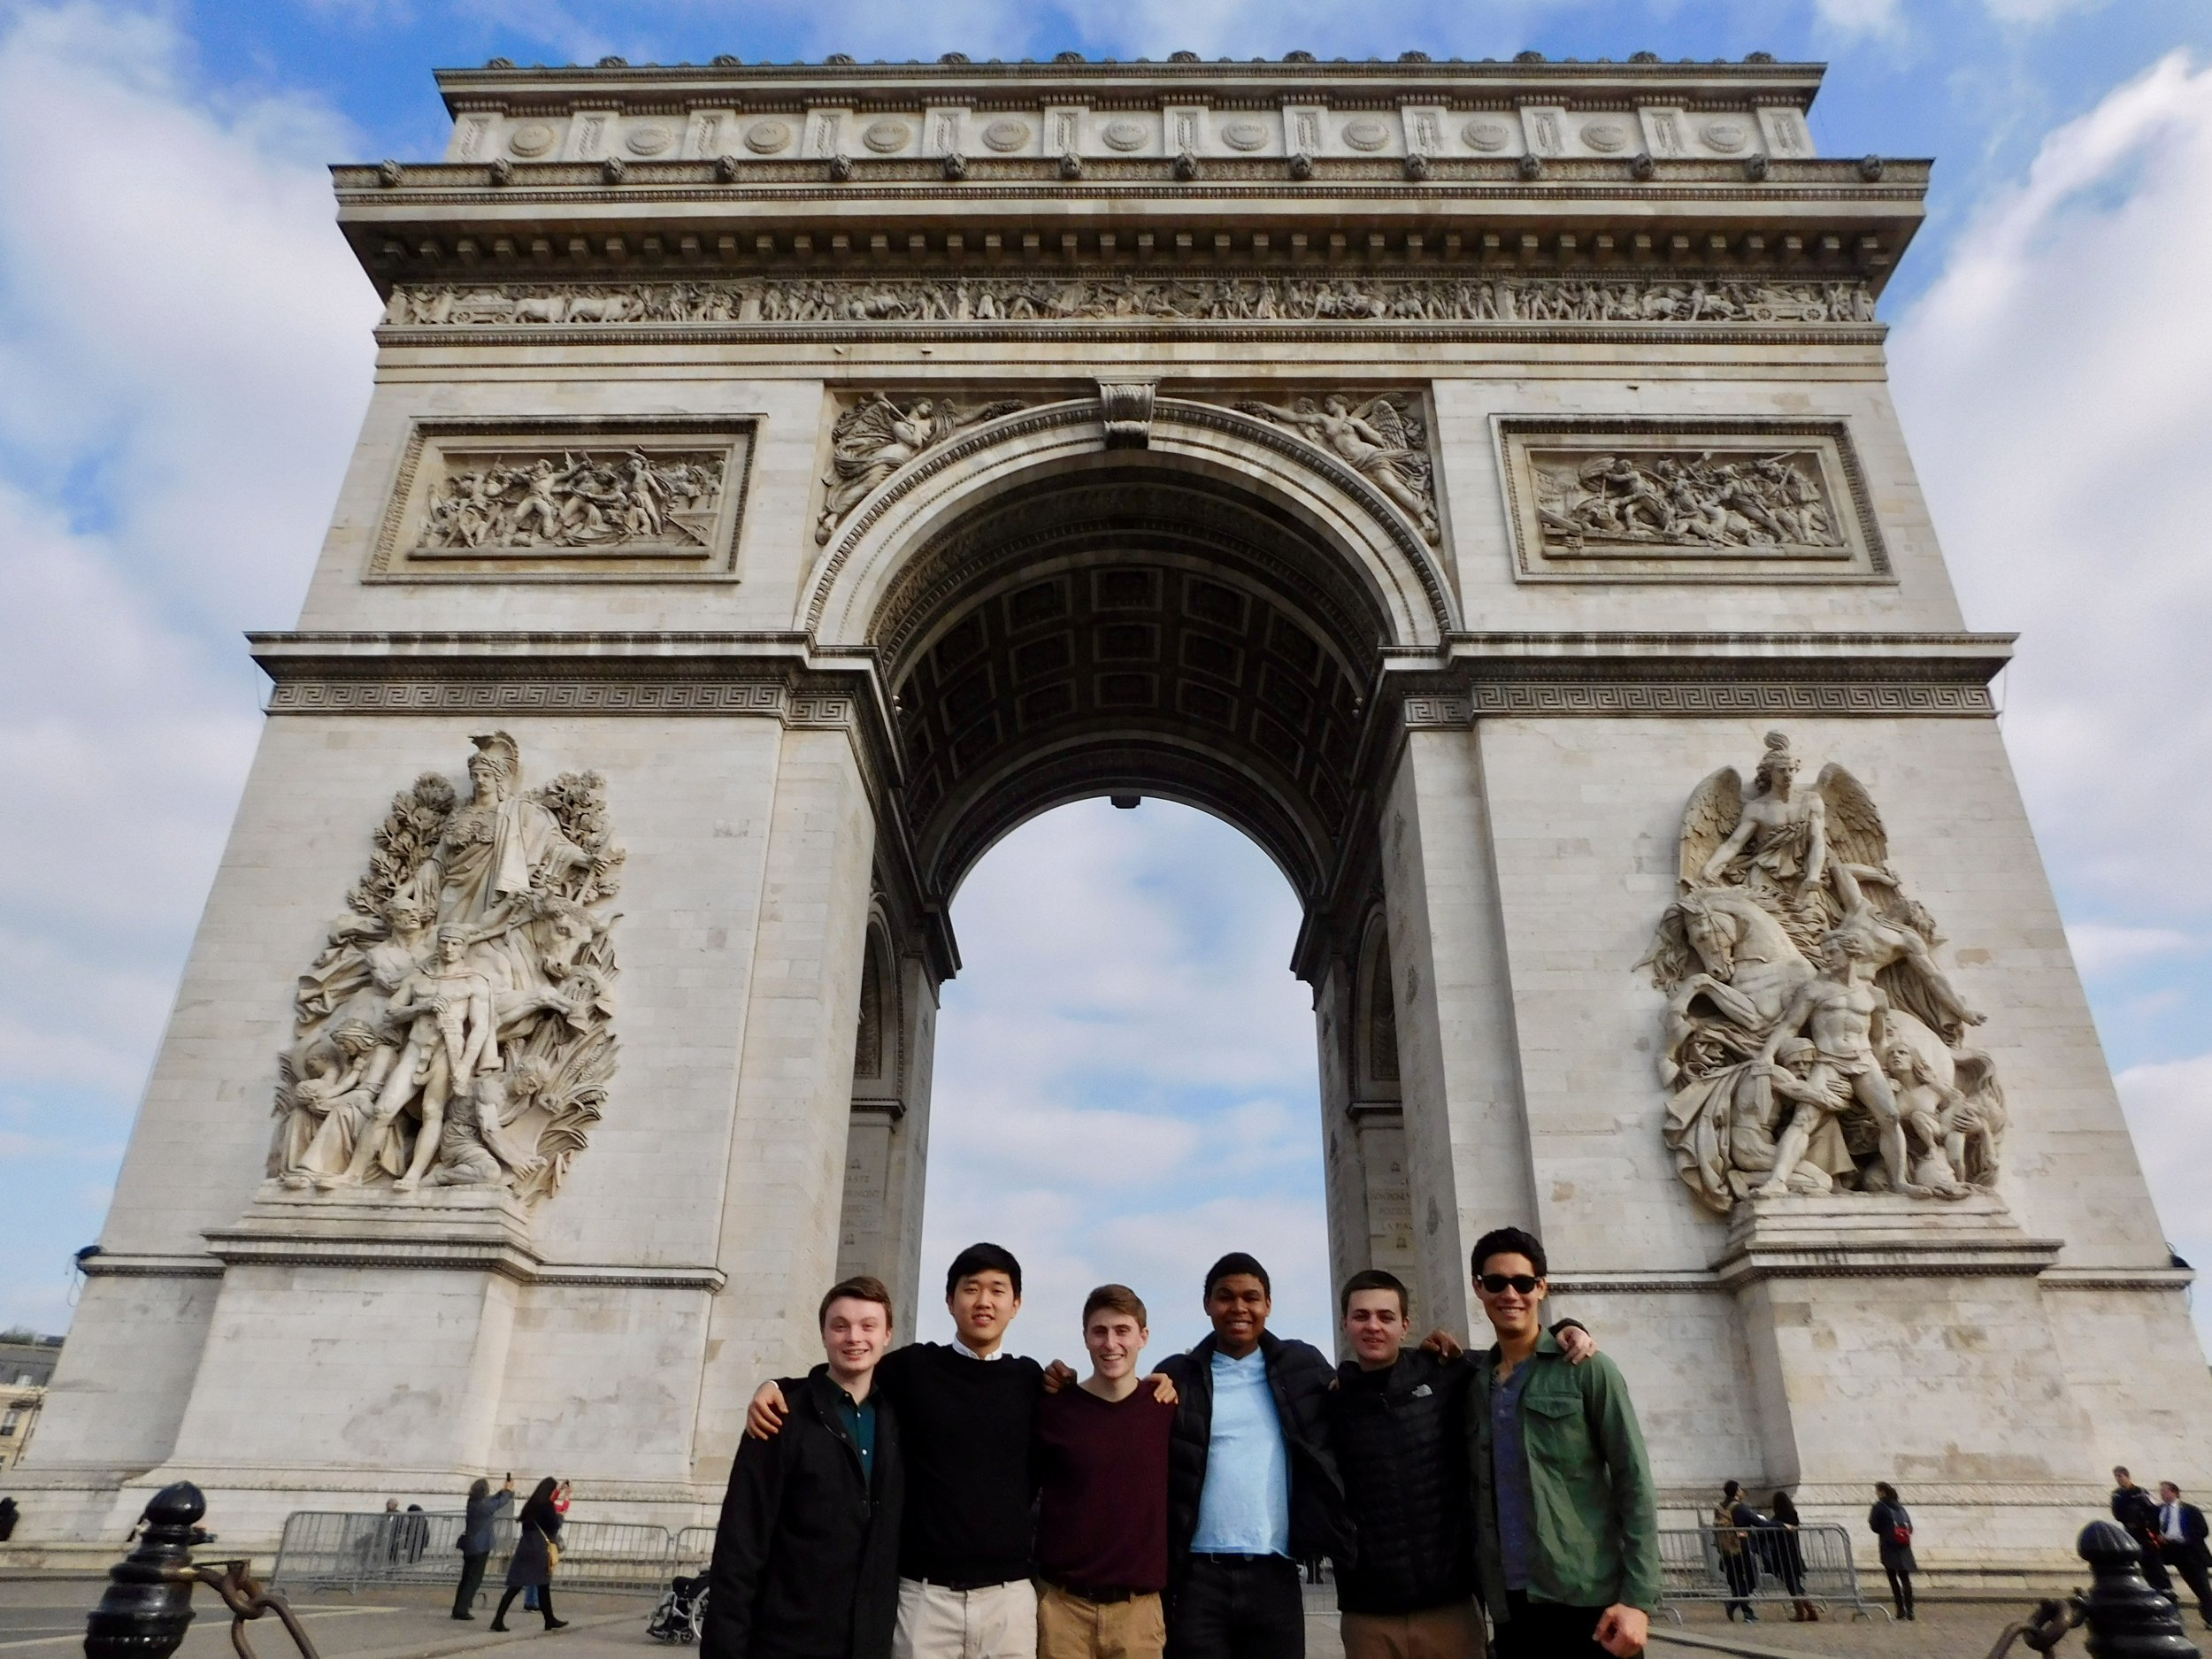 Freshmen group photo in front of the Arc de Triomphe